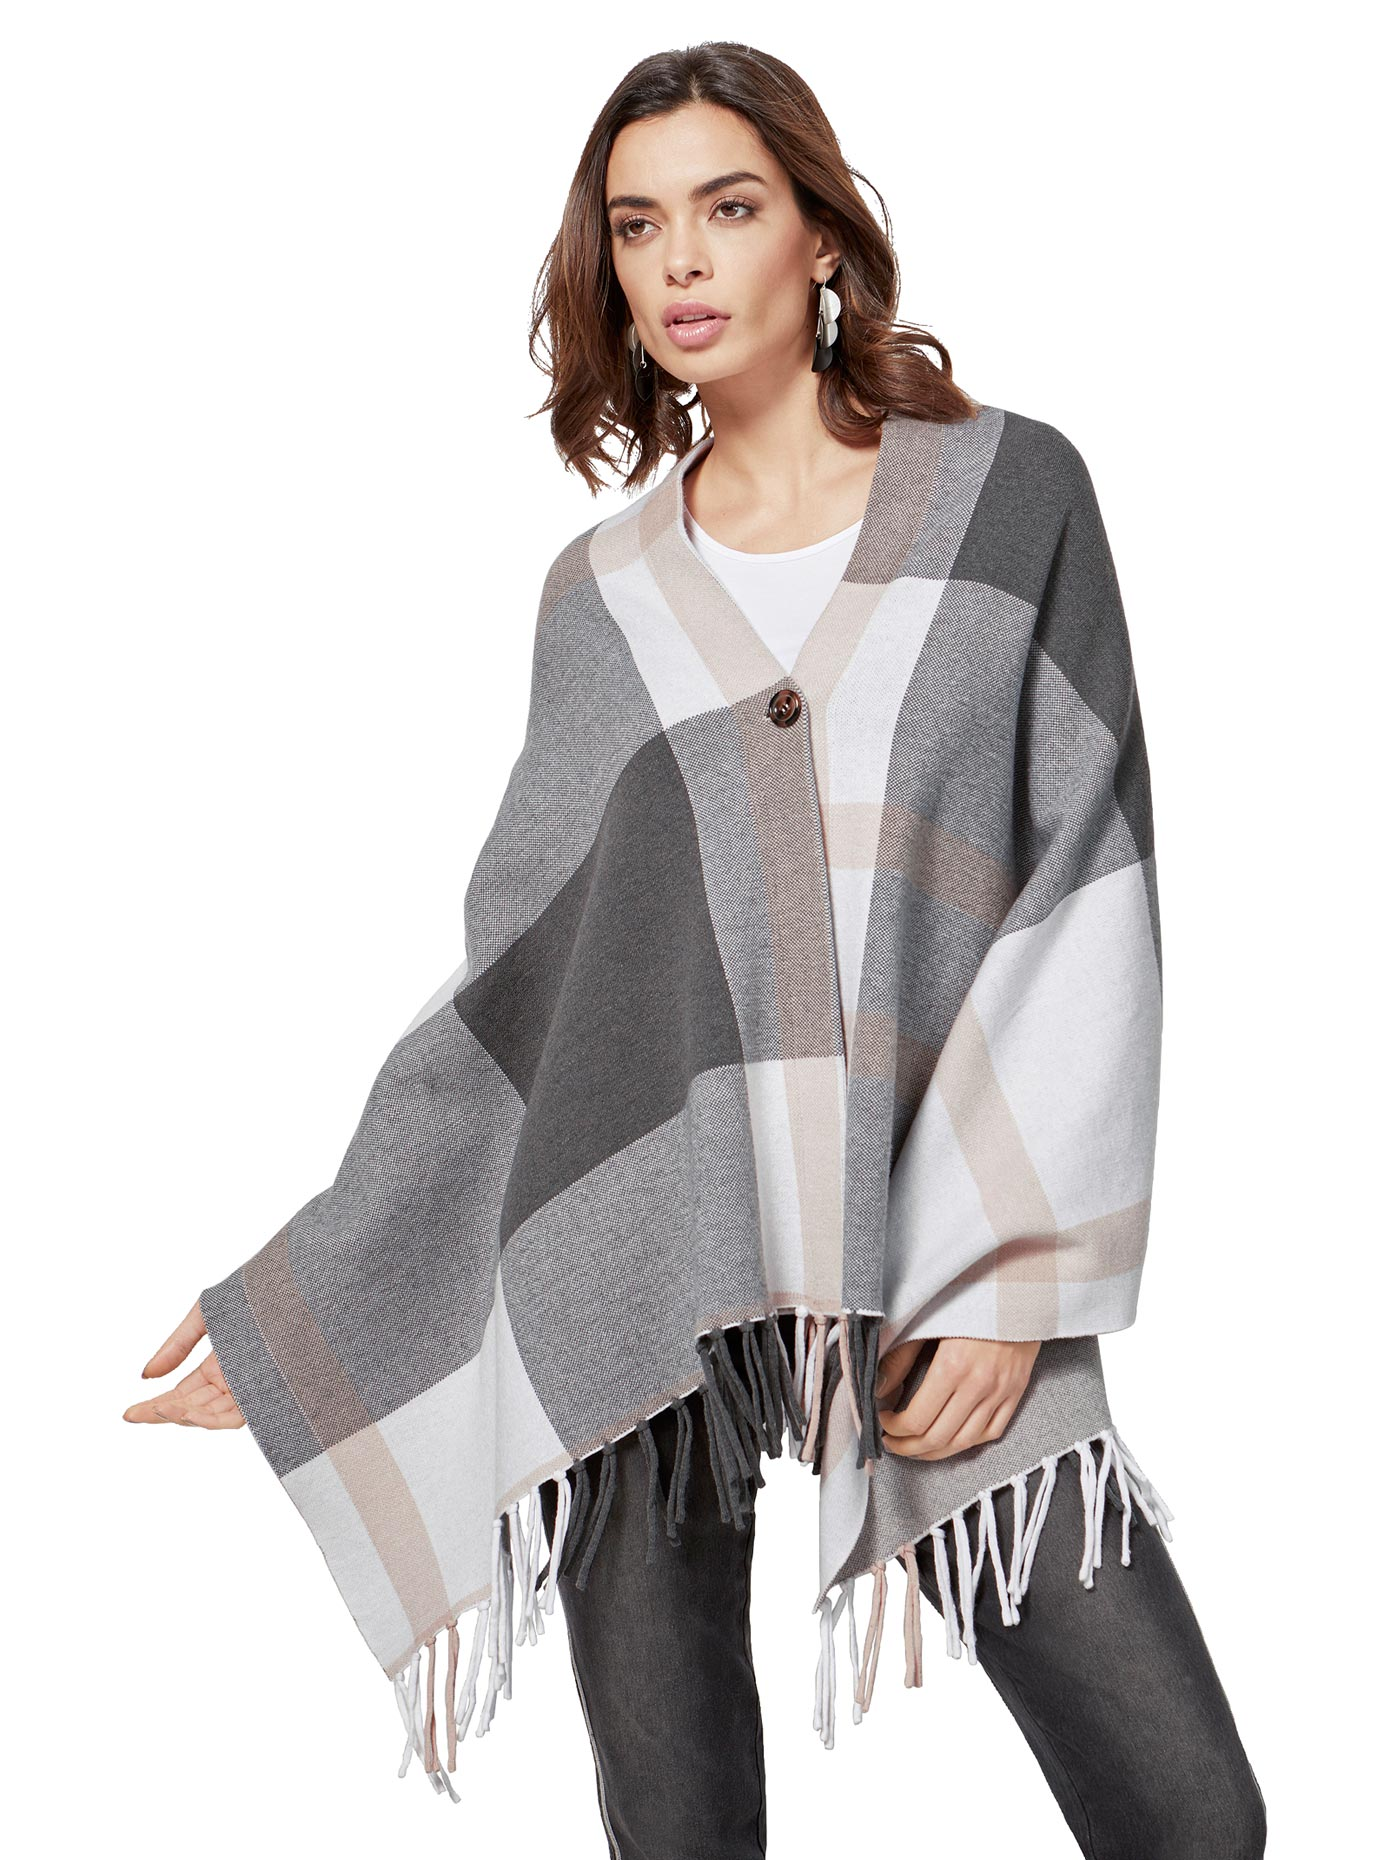 création L Poncho mit Karomusterung | Bekleidung > Pullover > Ponchos & Capes | Creation L